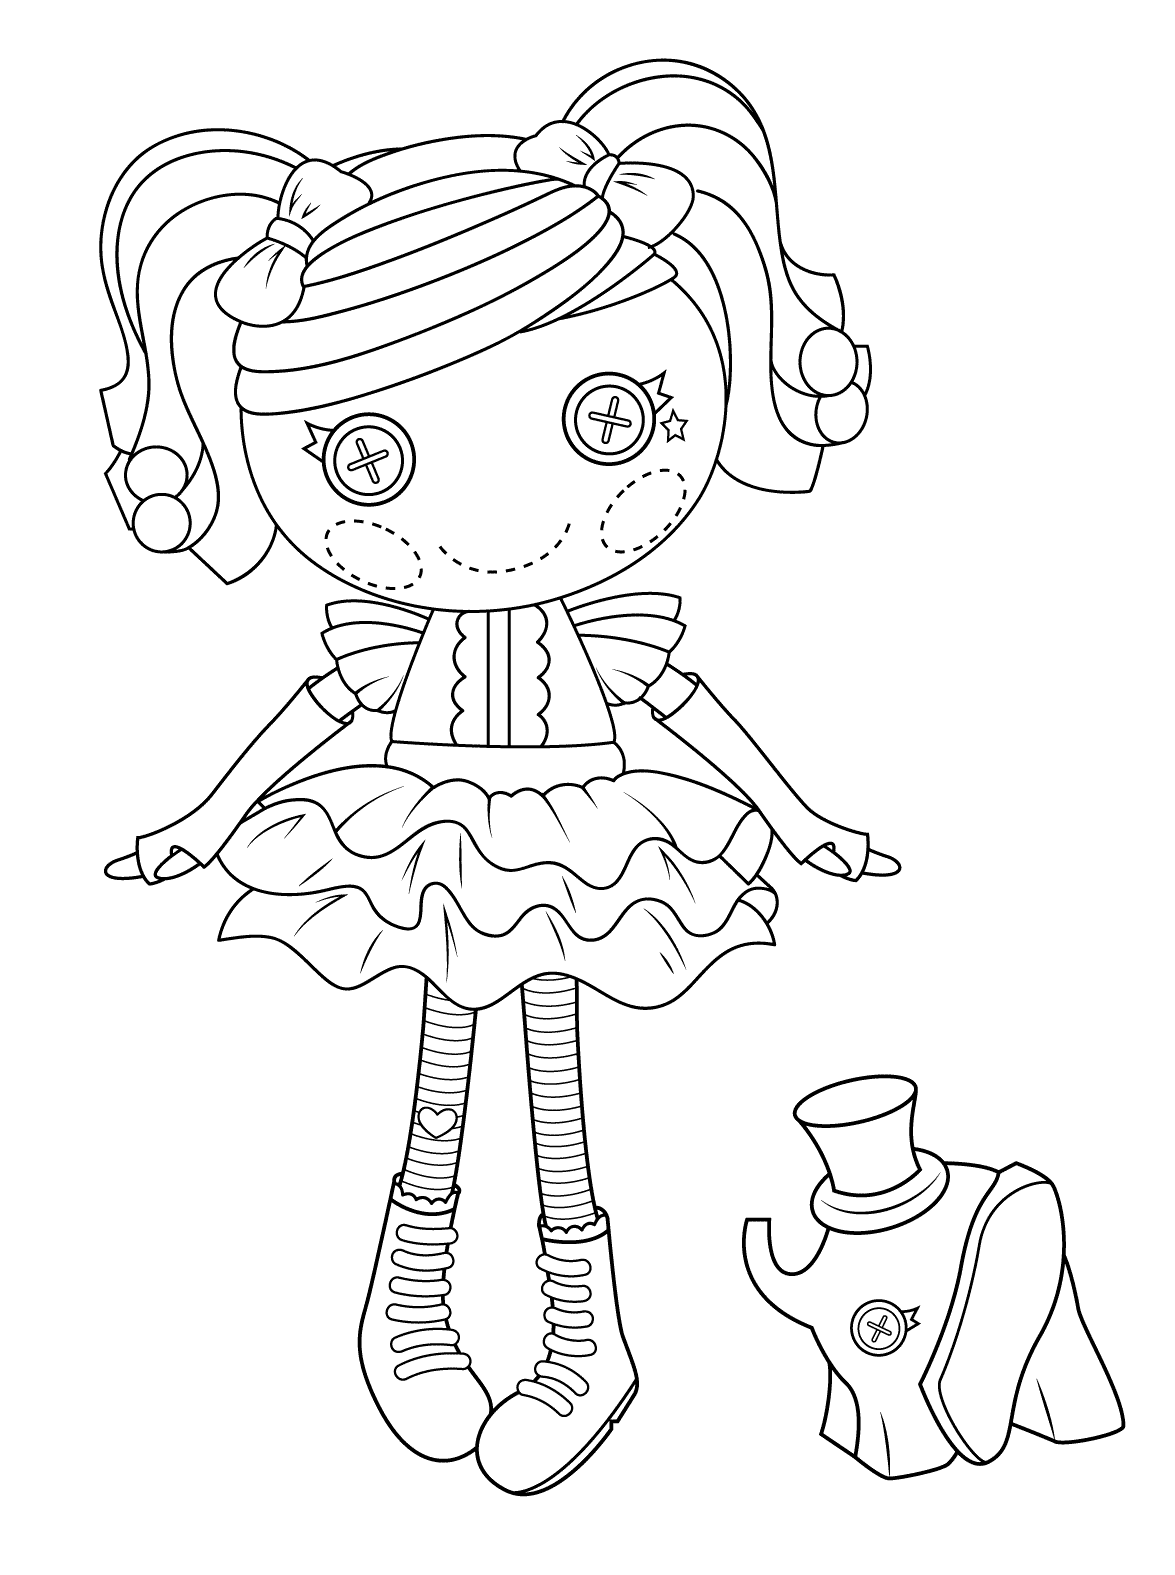 doll colouring pages doll coloring pages best coloring pages for kids colouring pages doll 1 1